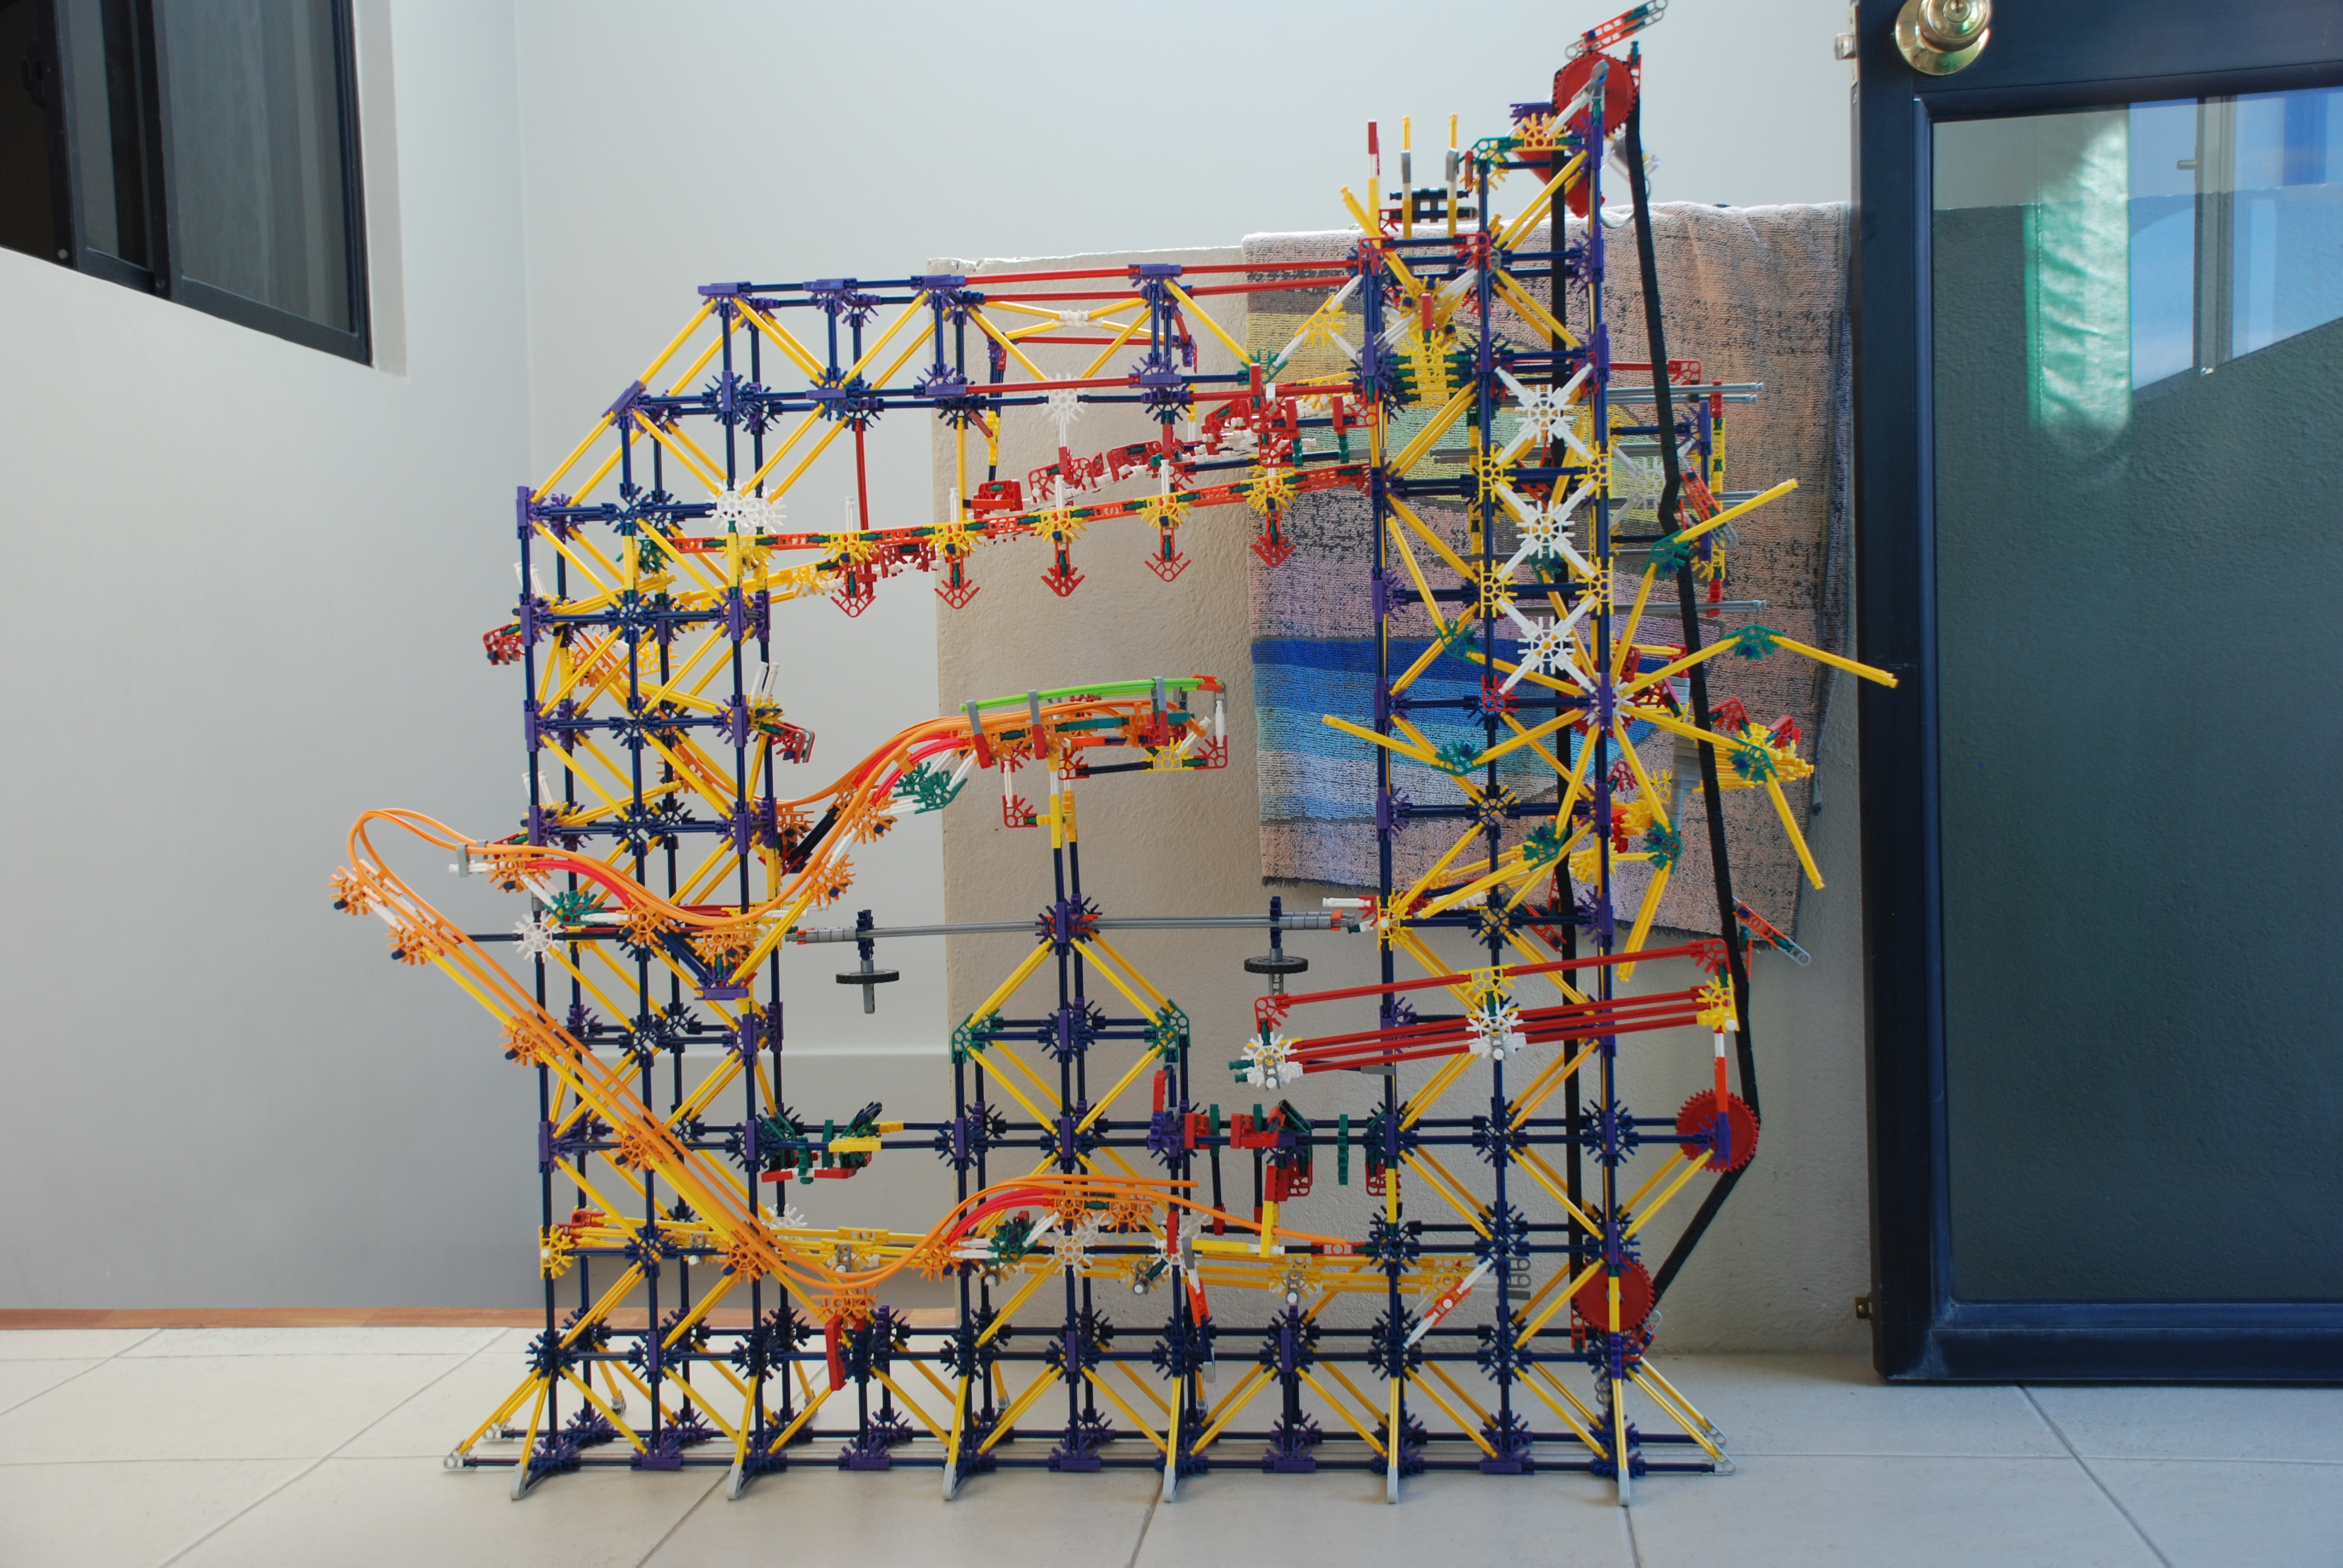 How to build Project Blaster Knex ball machine